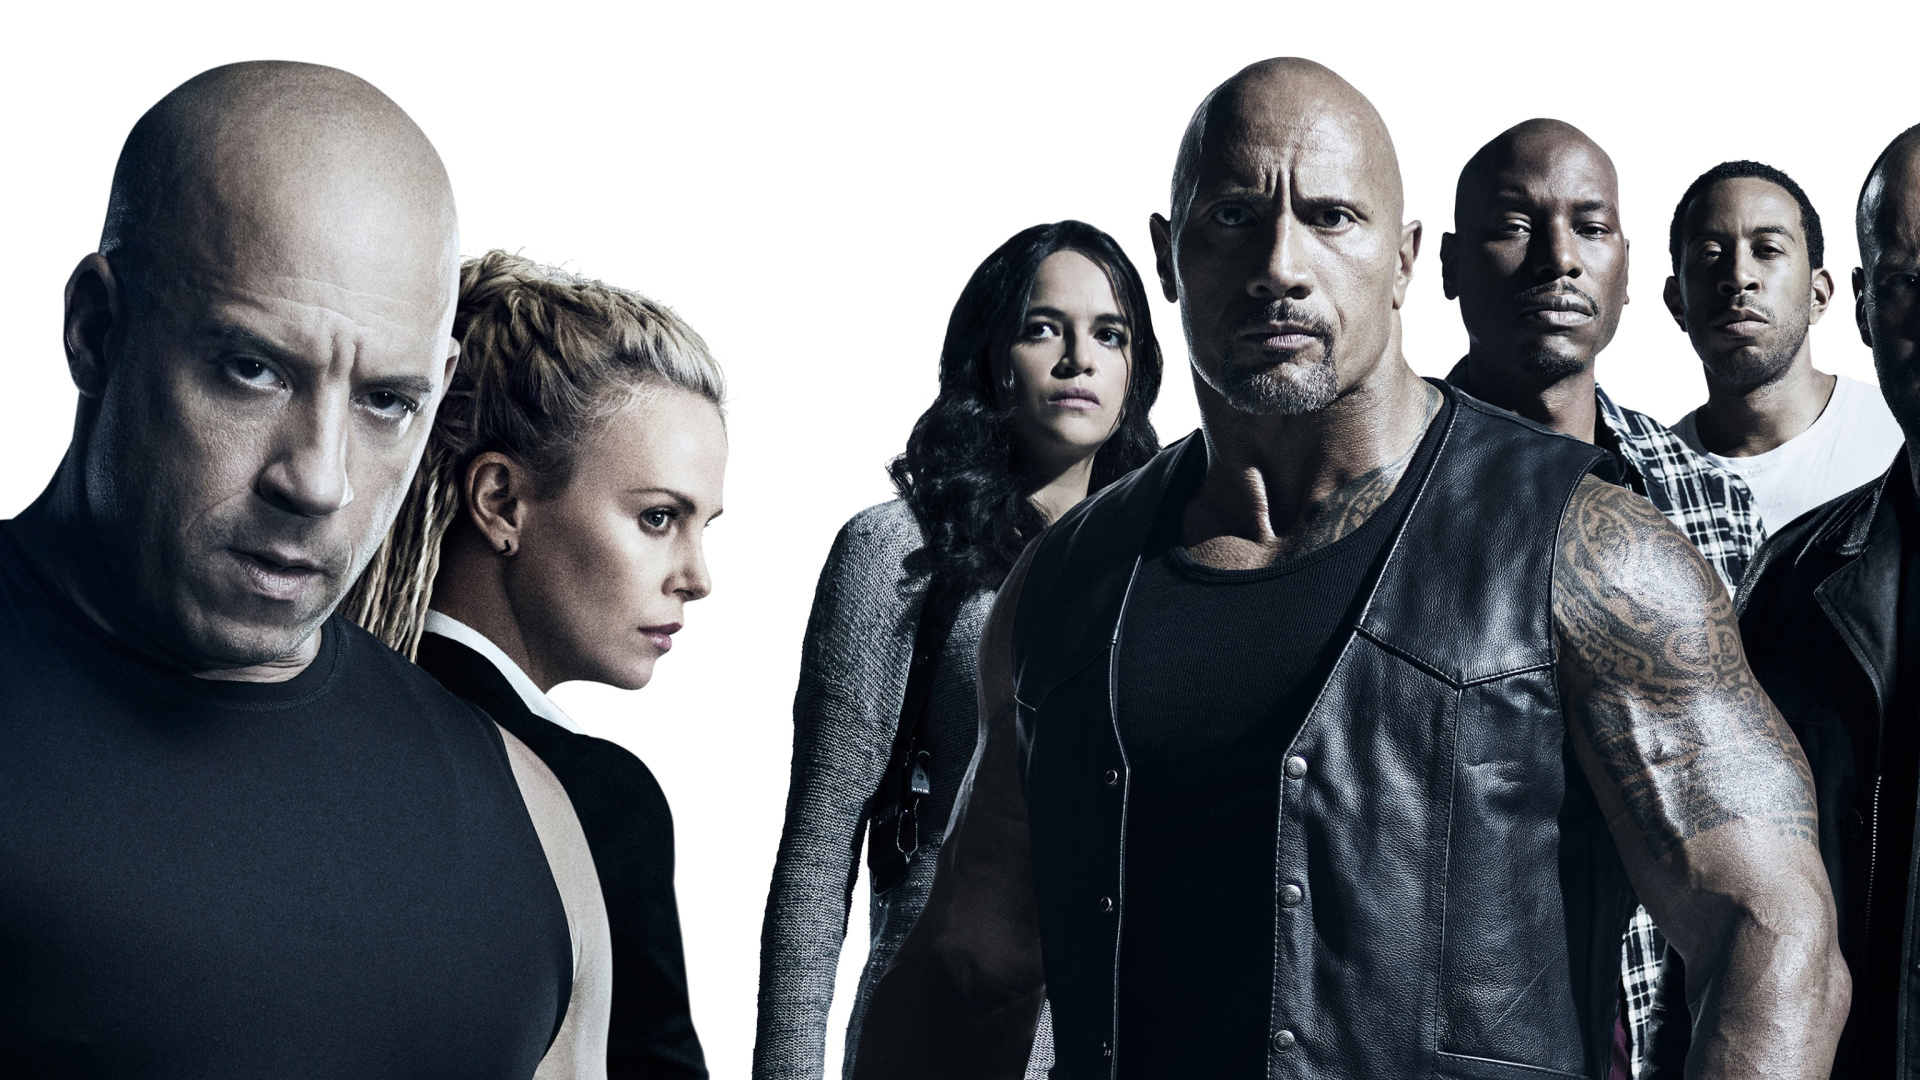 The Fate of the Furious Cast wallpaper 1920x1080